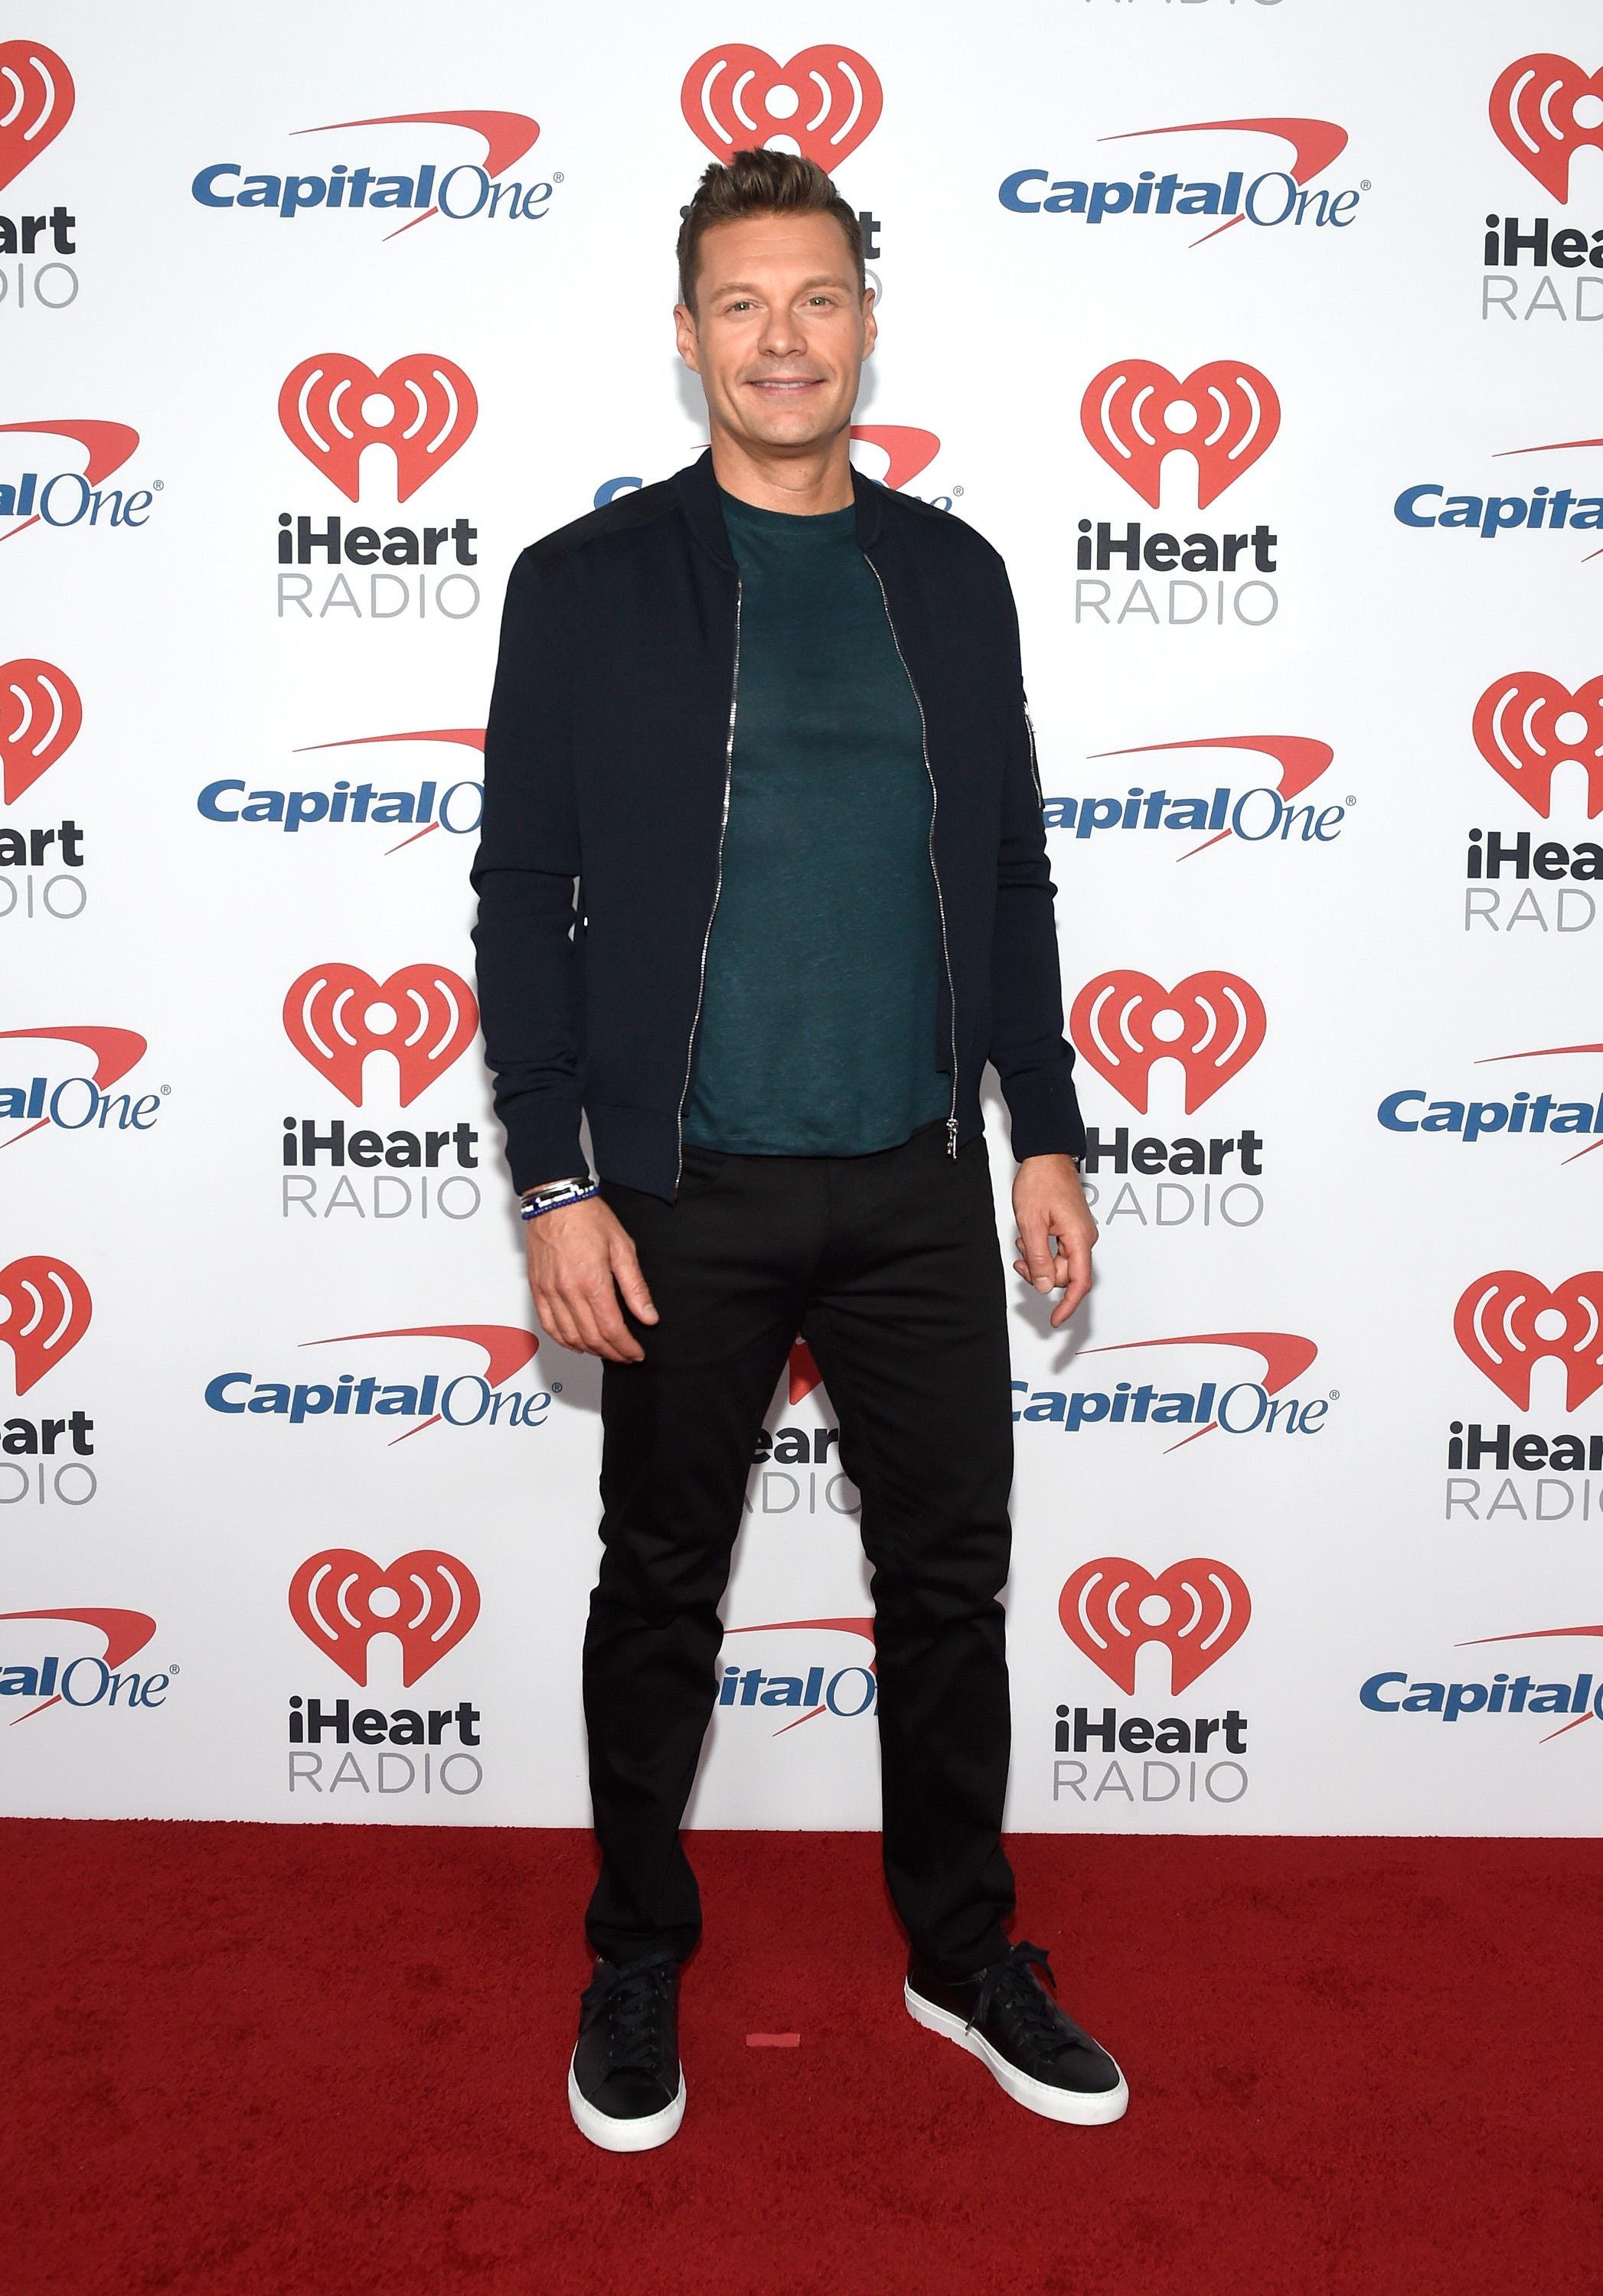 Ryan Seacrest disputes 'reckless' misconduct allegations